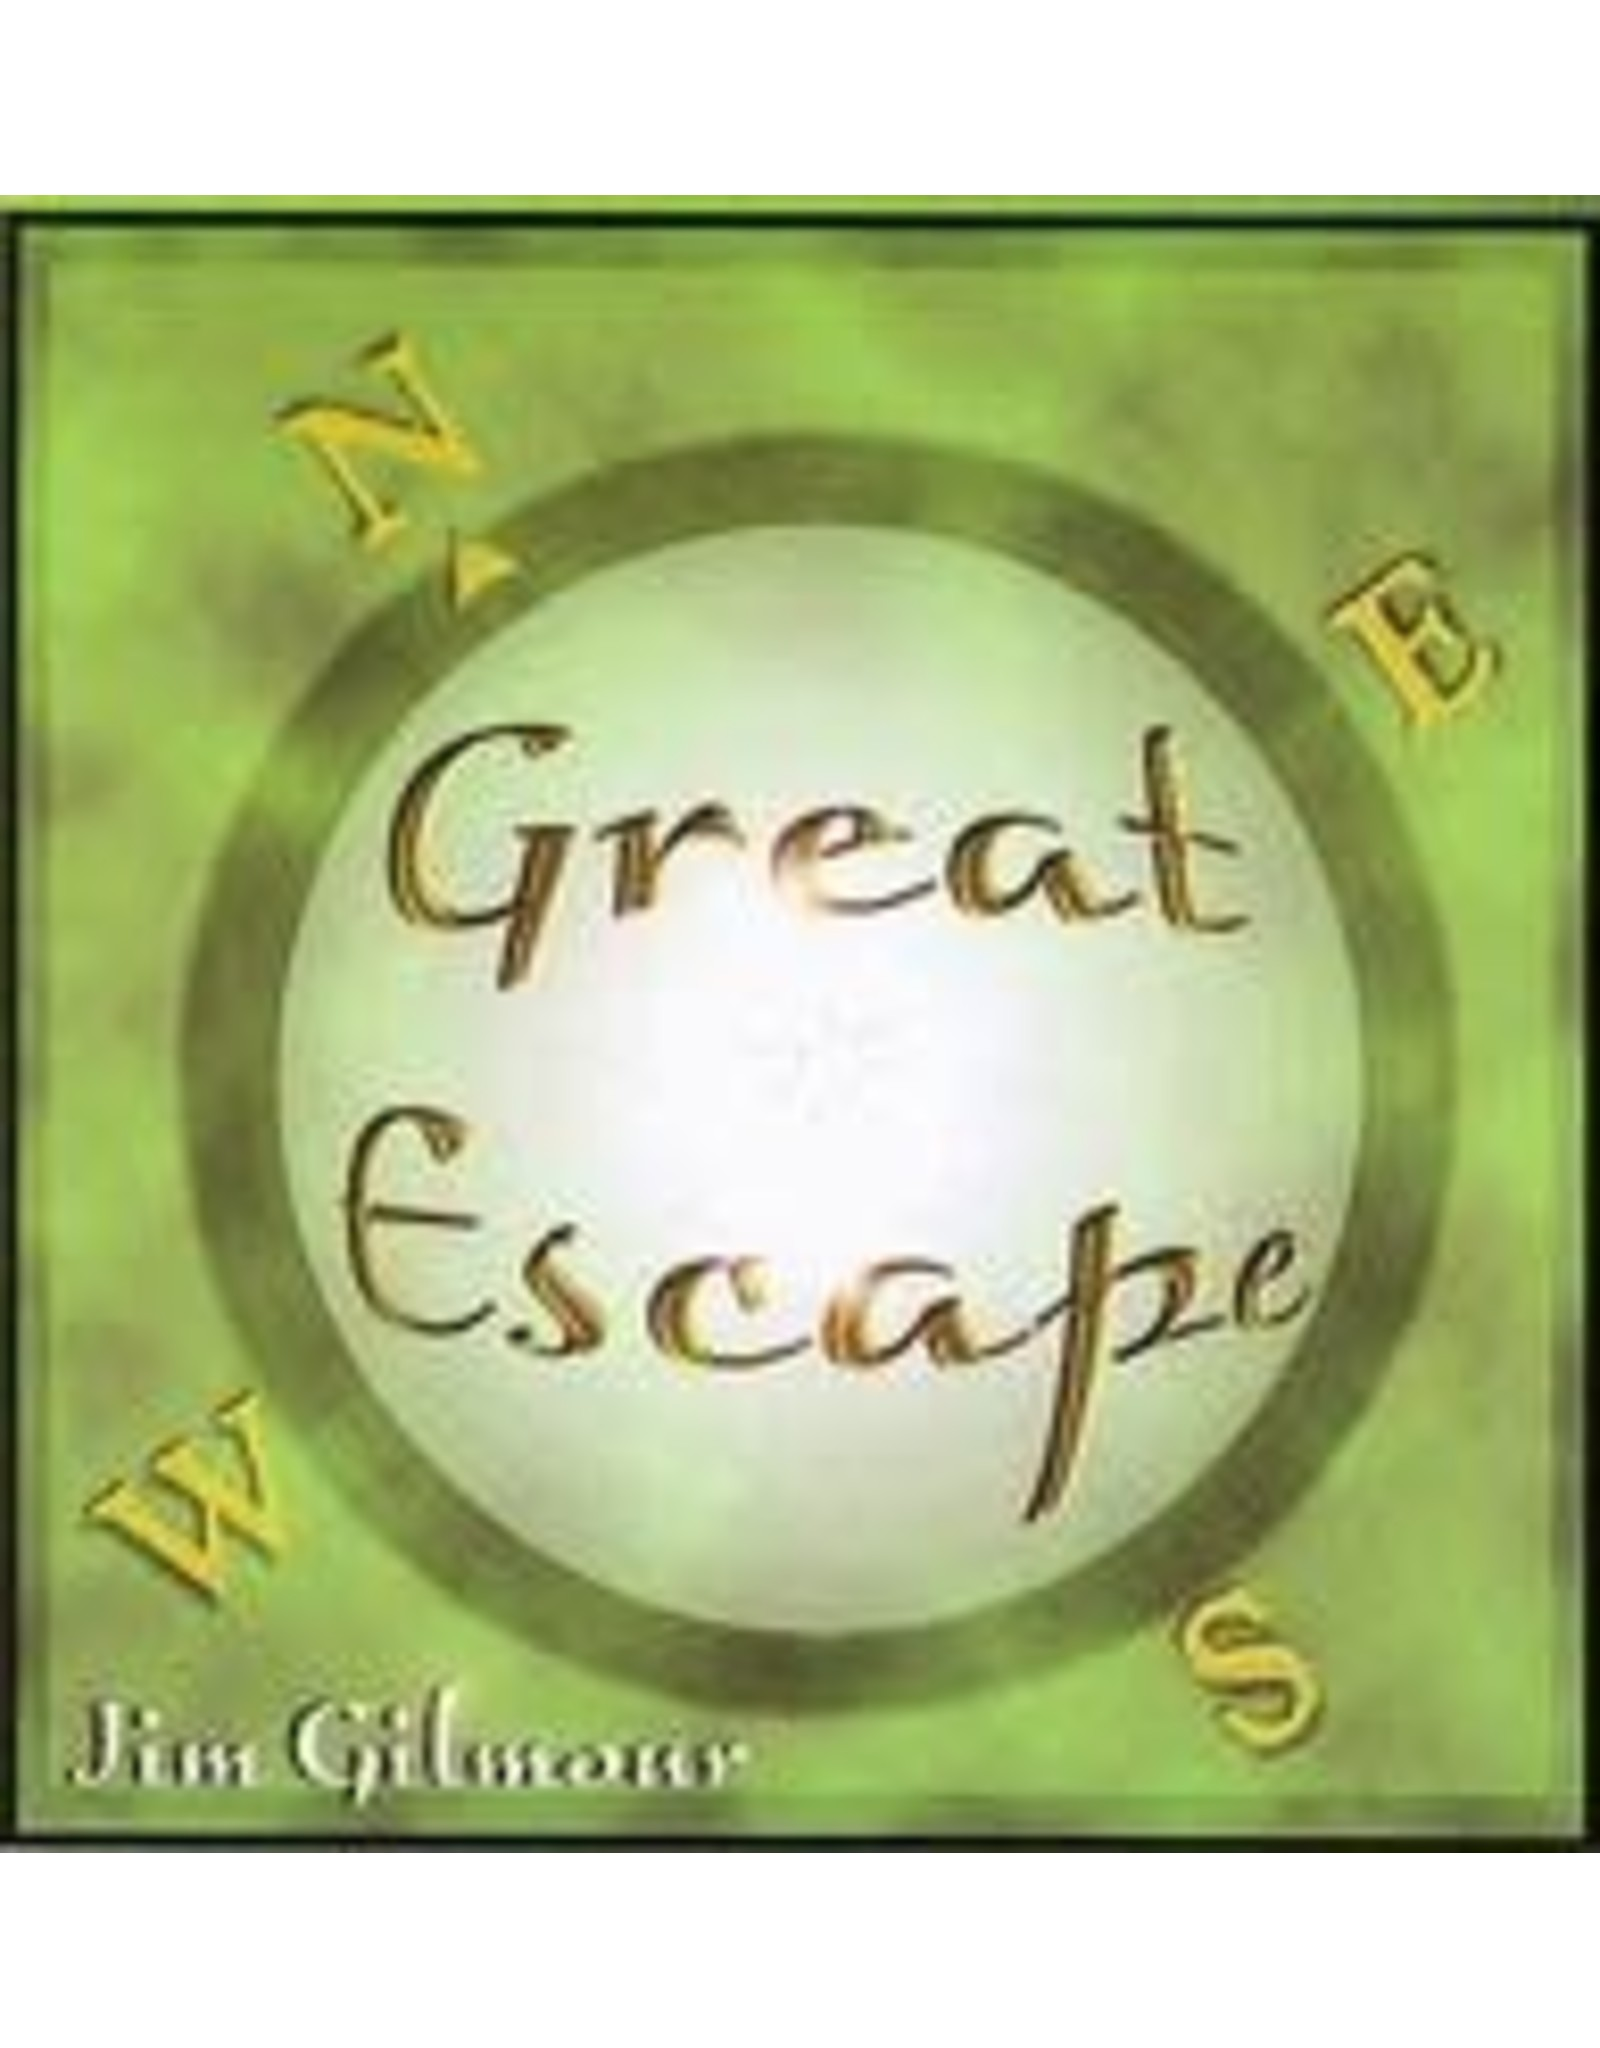 Gilmour, John (Saga) - Great Escape CD